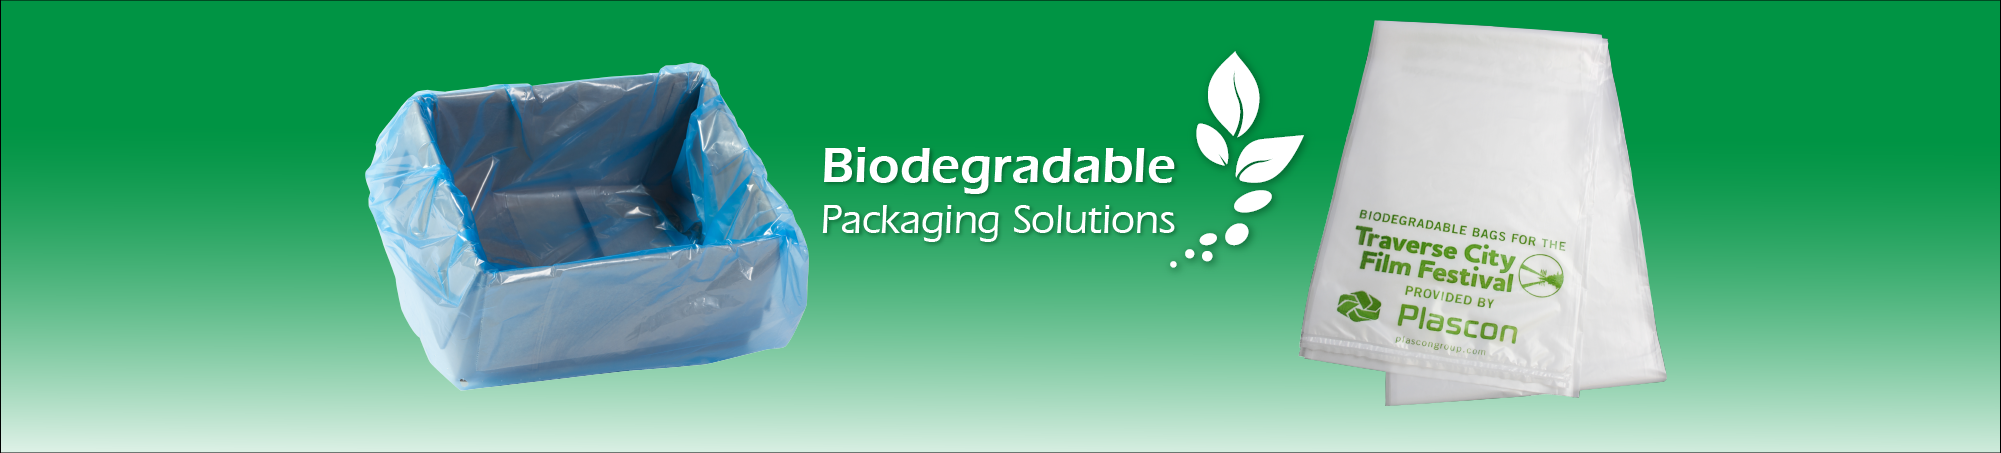 biodegradable_1-01